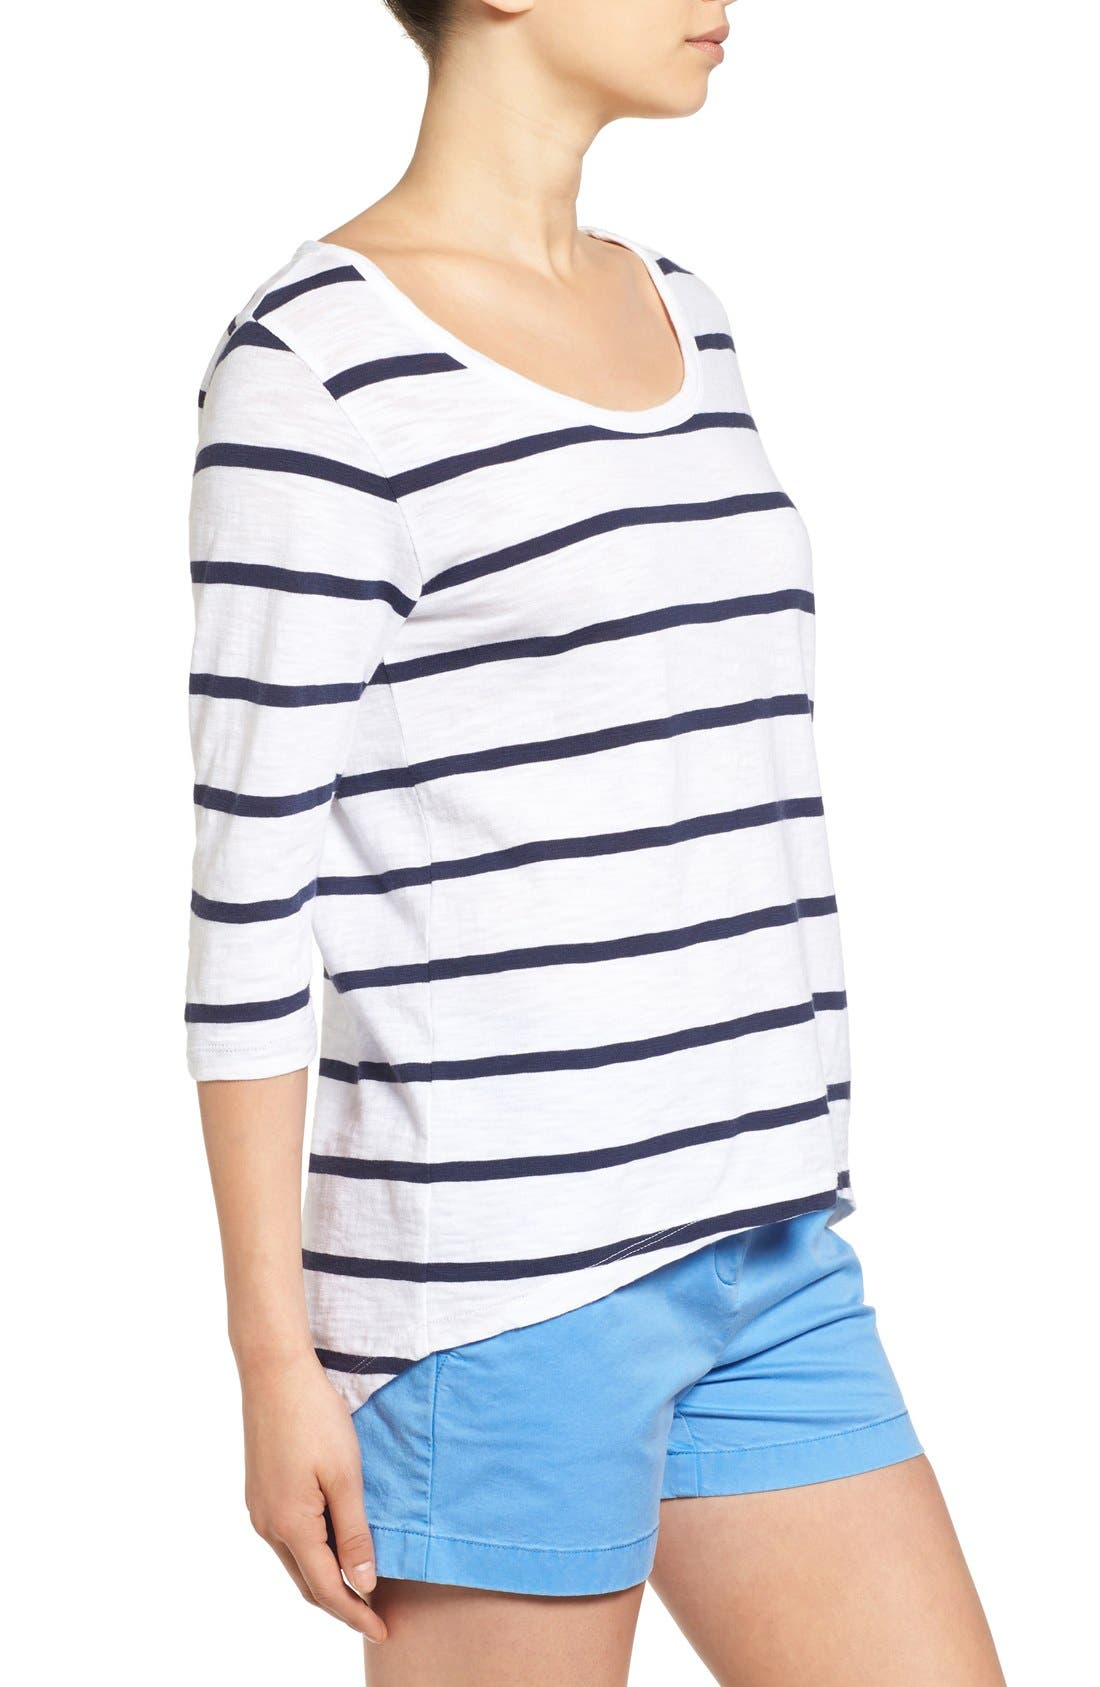 Alternate Image 3  - Vineyard Vines 'Anguilla' Stripe Tee